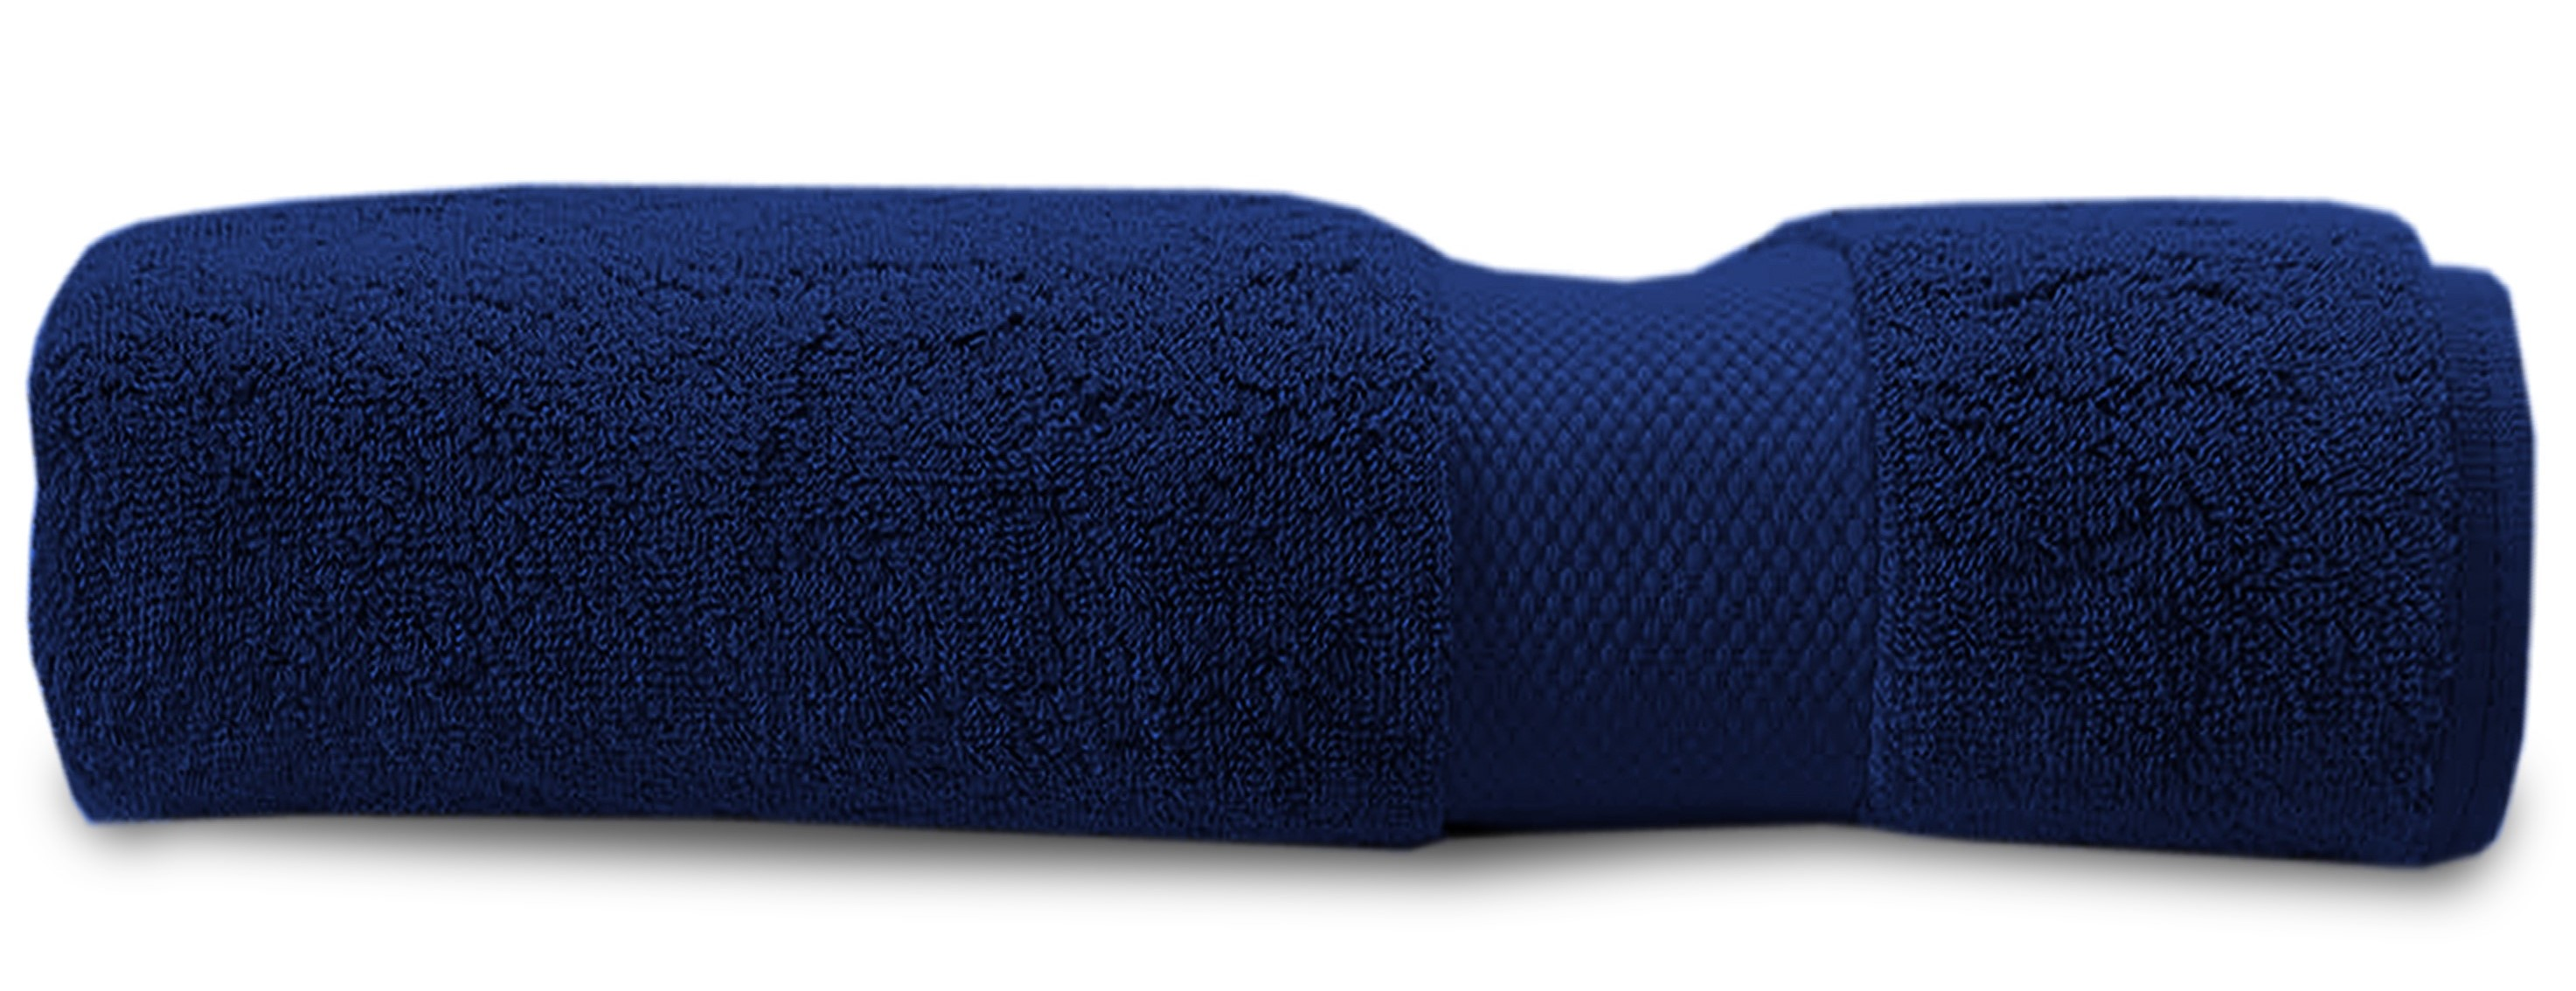 Navy Bath Towel From Amouve